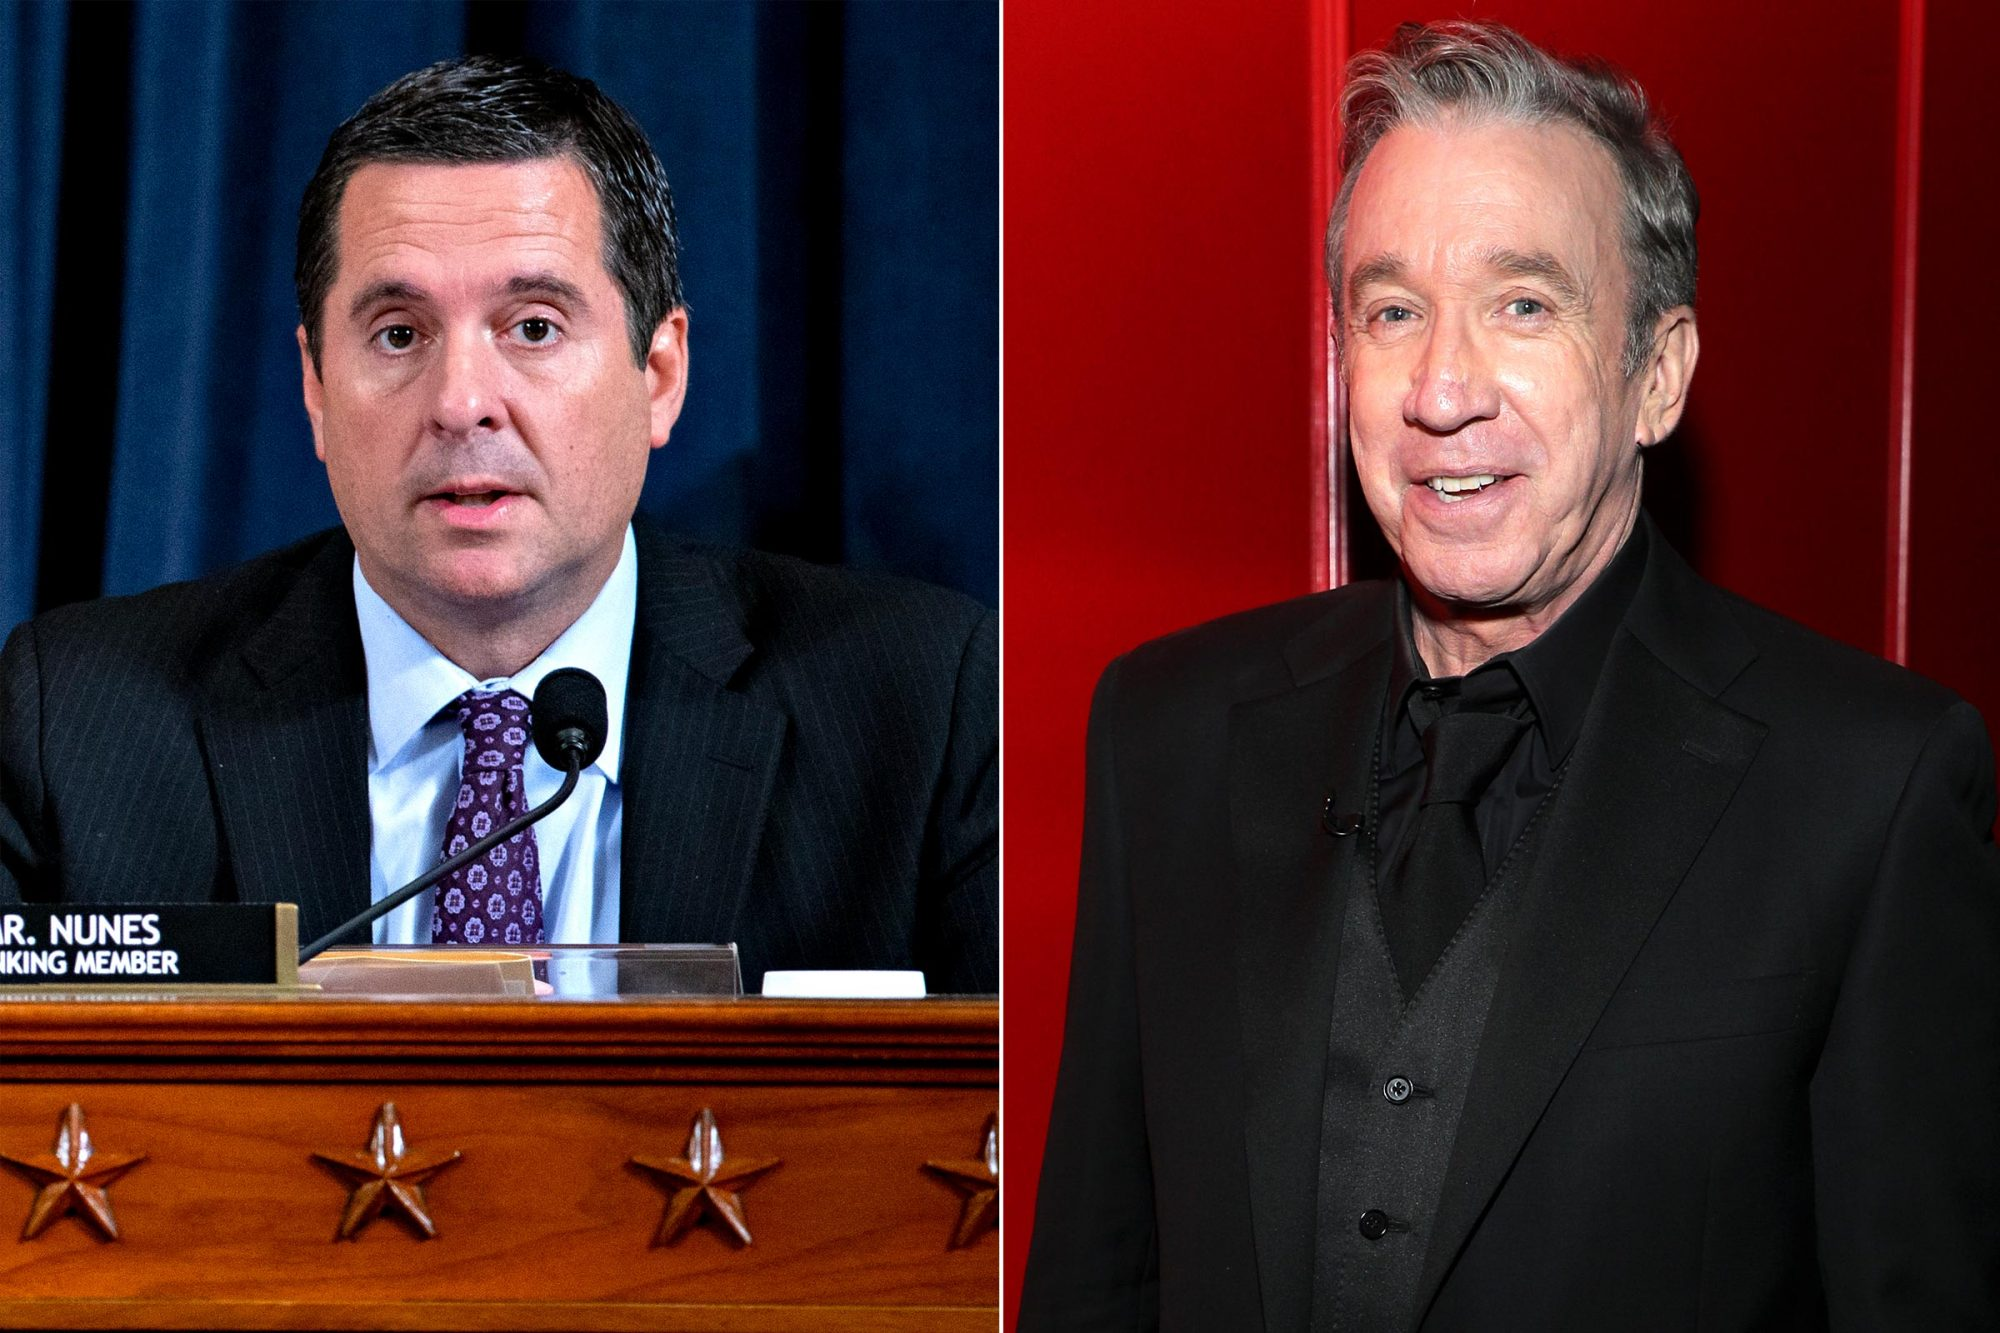 U.S. Rep. Devin Nunes, played by Tim Allen